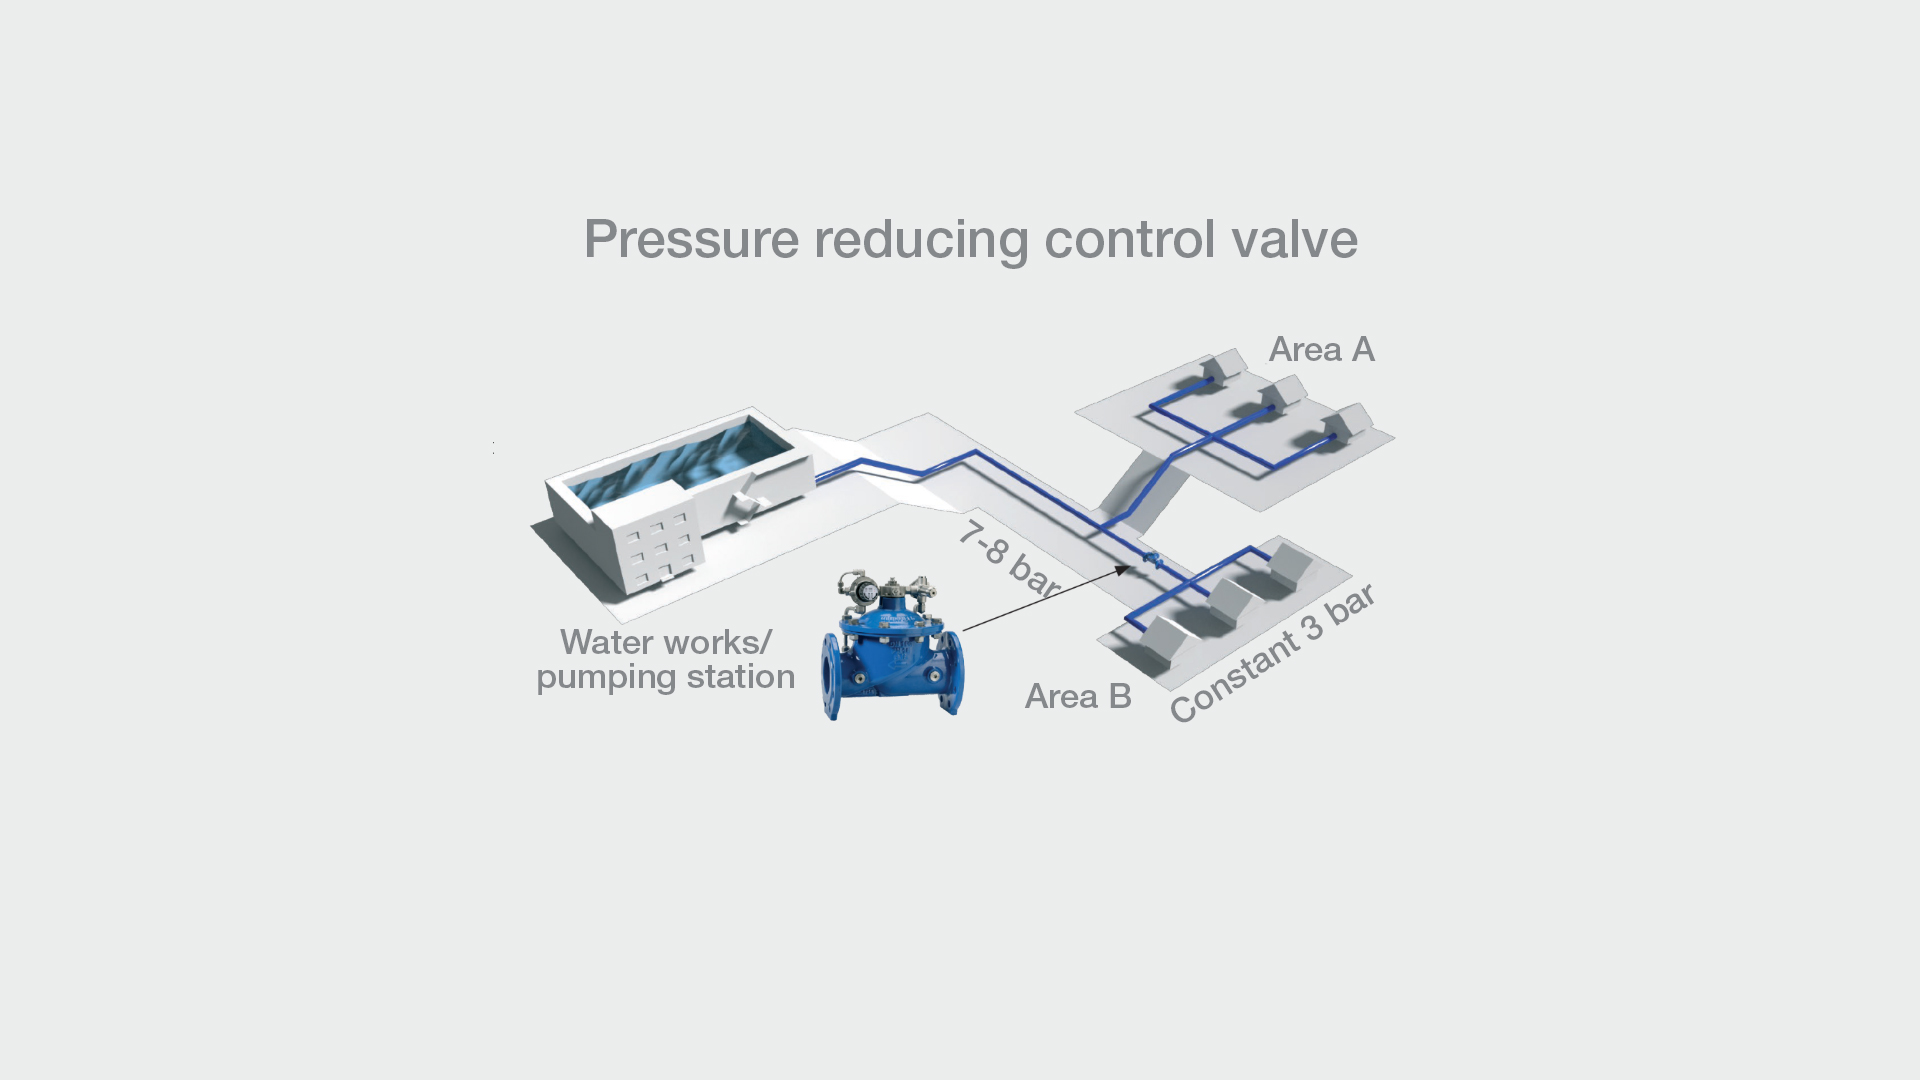 Illustration with pressure reducing control valve